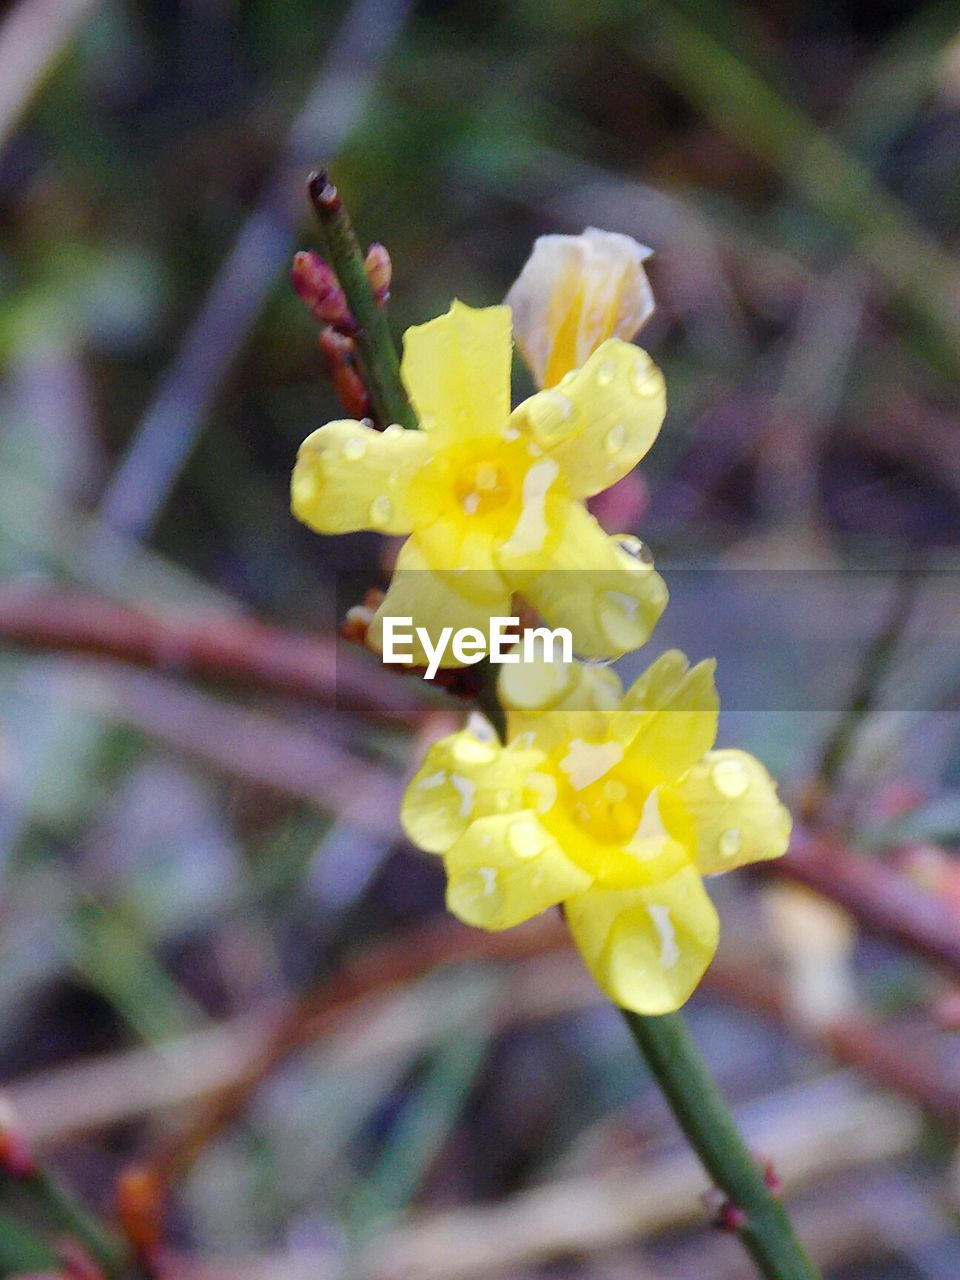 flower, yellow, fragility, petal, beauty in nature, growth, nature, freshness, flower head, no people, blossom, plant, outdoors, close-up, springtime, day, focus on foreground